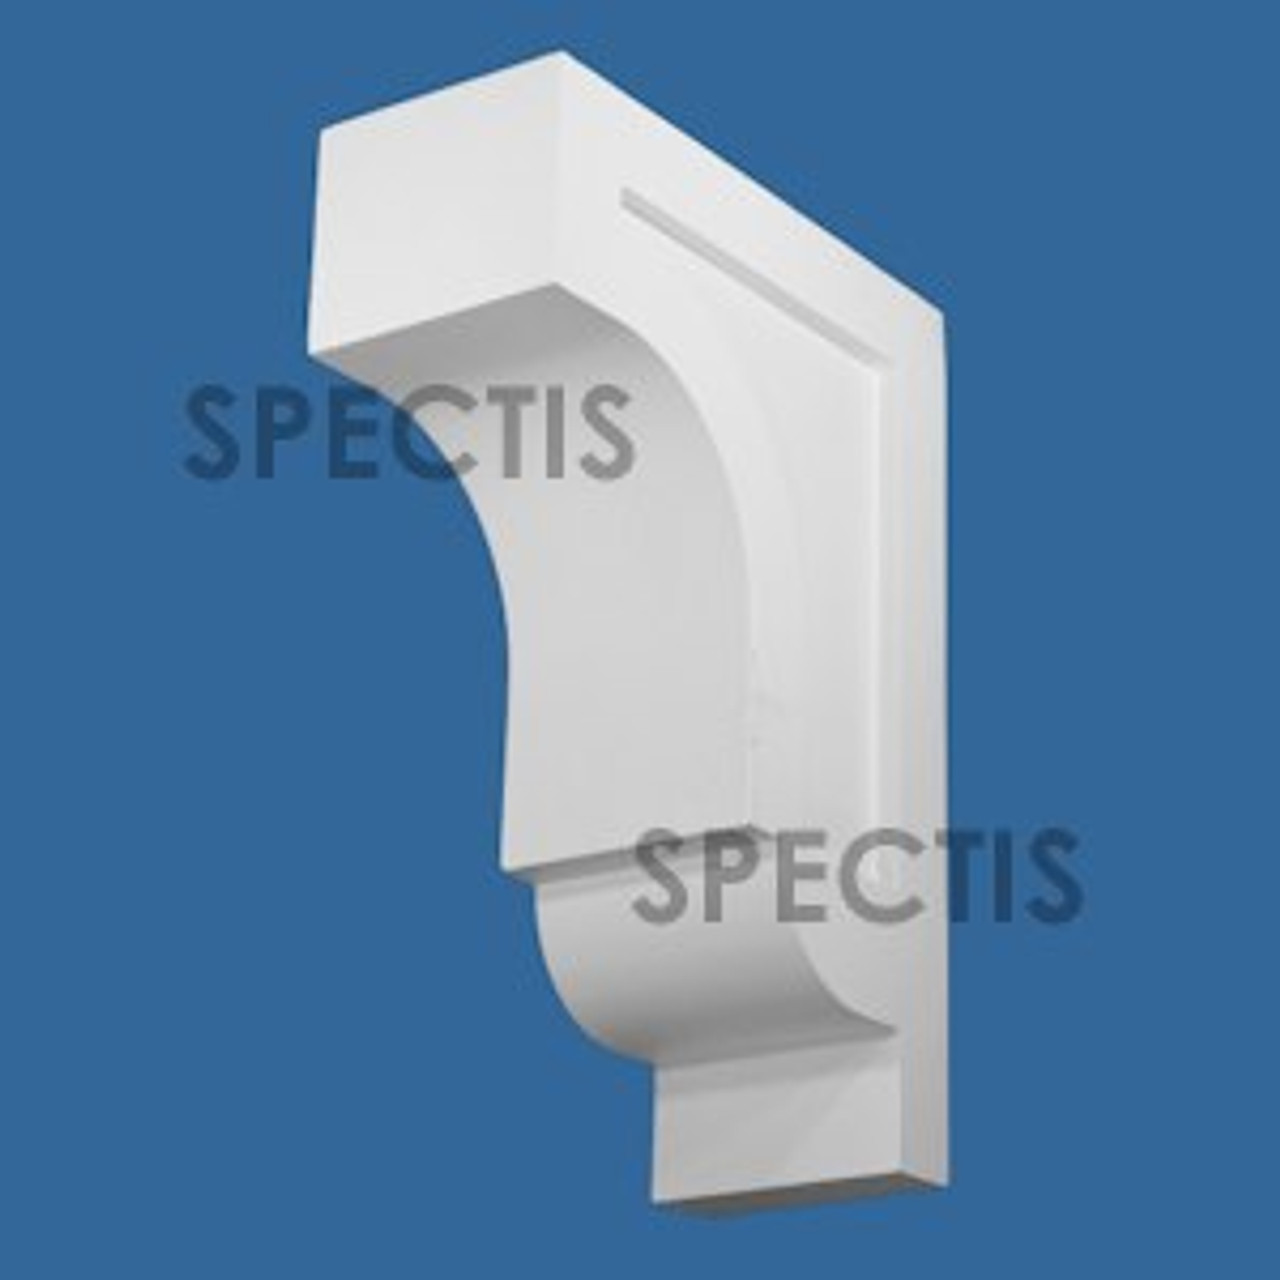 "BL3079 Spectis Eave Block or Bracket 6""W x 19.38""H x 14"" Projection"